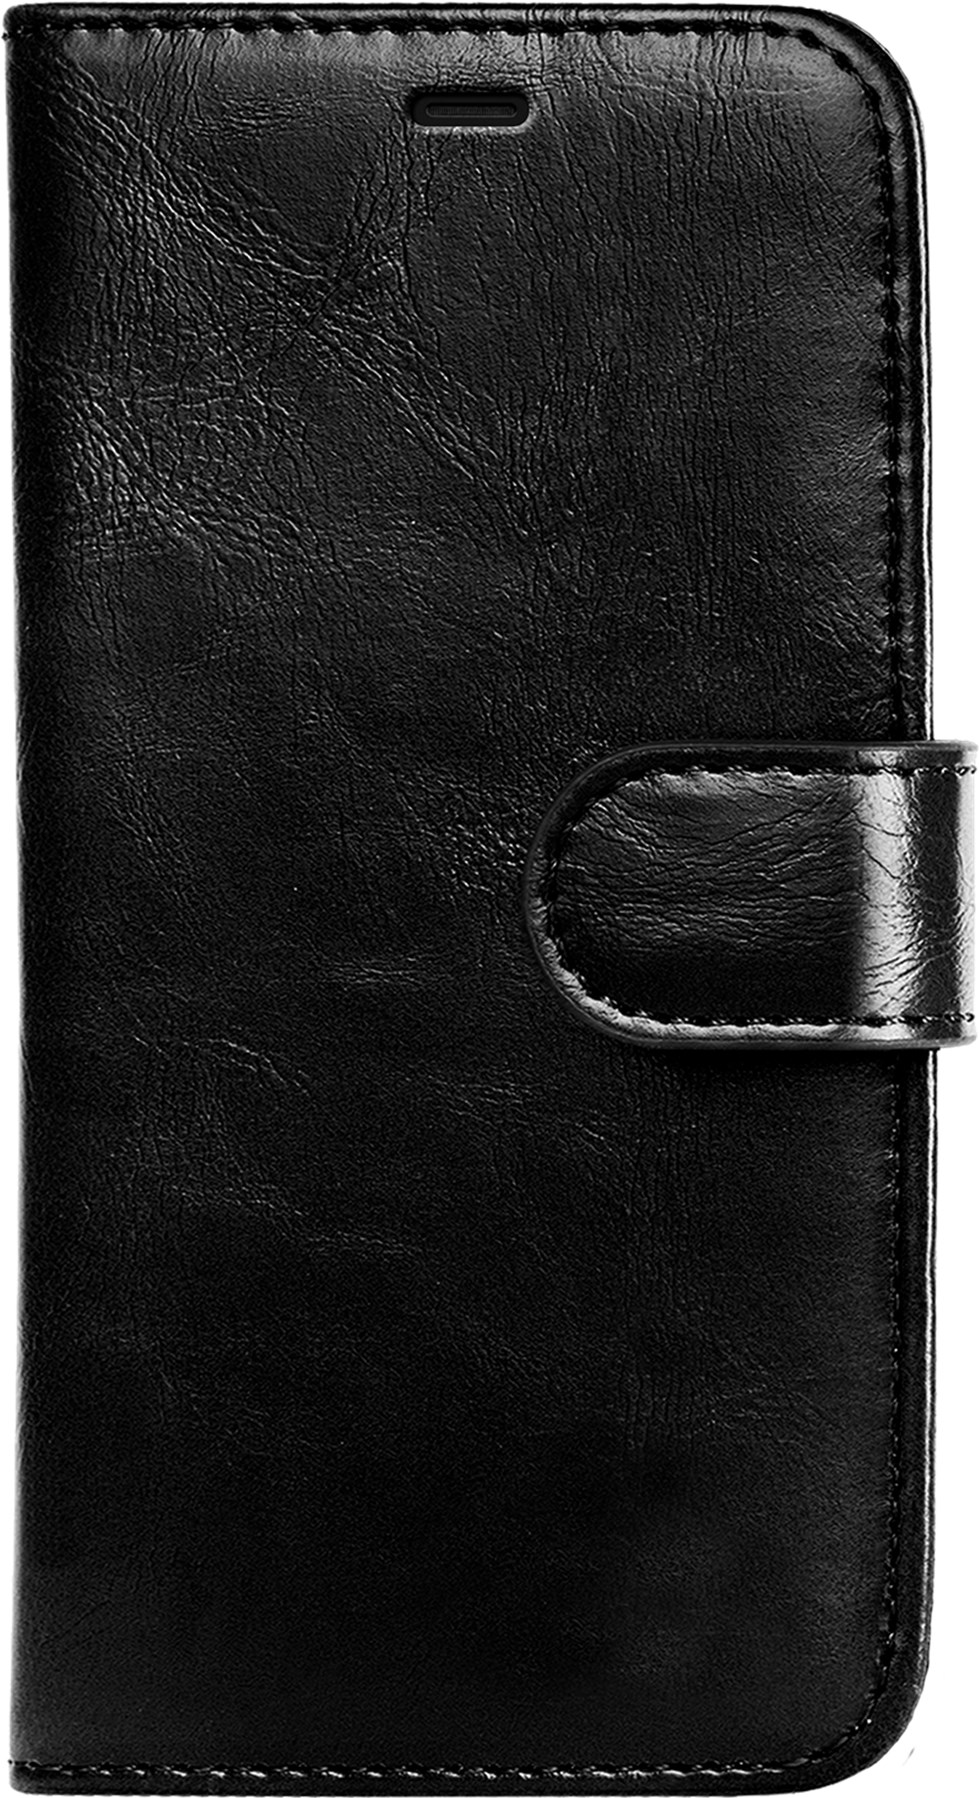 iDeal of Sweden Ideal Magnet Wallet + Iphone 11 Pro Black